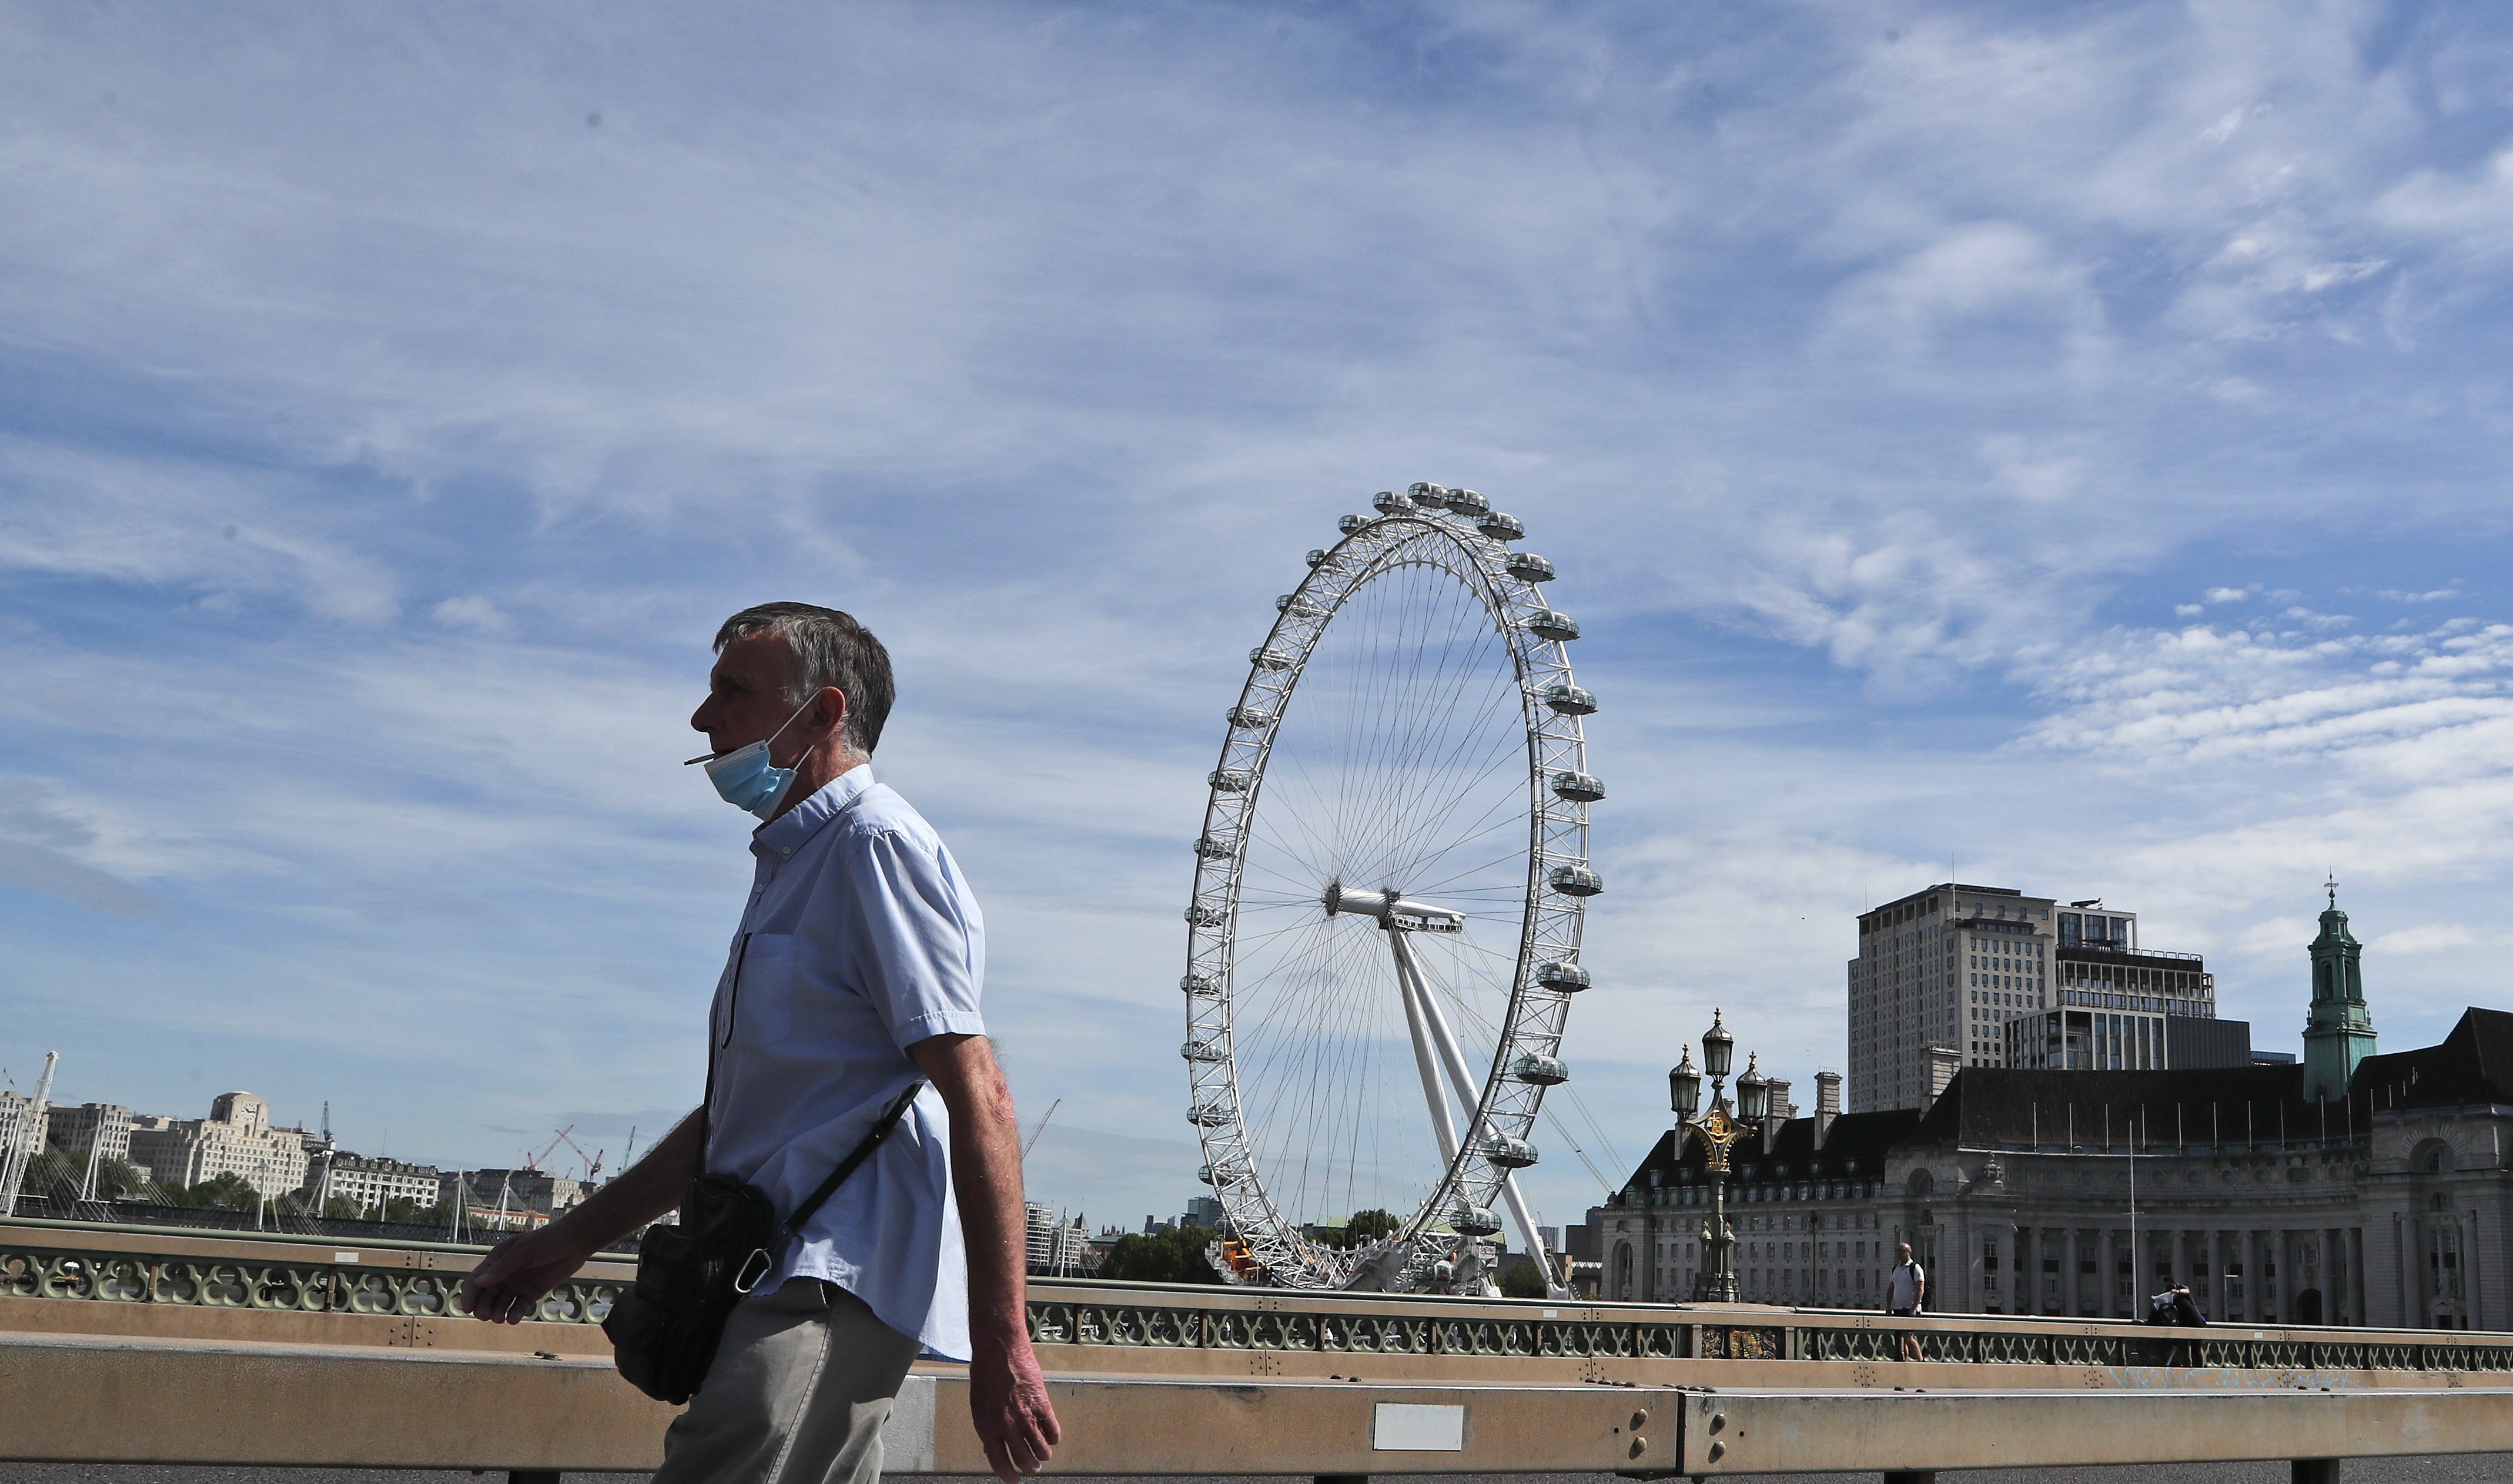 A man wearing a protective mask strolls across a bridge in central London, Tuesday, May 26, 2020, during hot weather following the gradual easing of the COVID-19 lockdown, allowing more outdoor recreation and letting some shops and businesses reopen. (AP Photo/Frank Augstein)